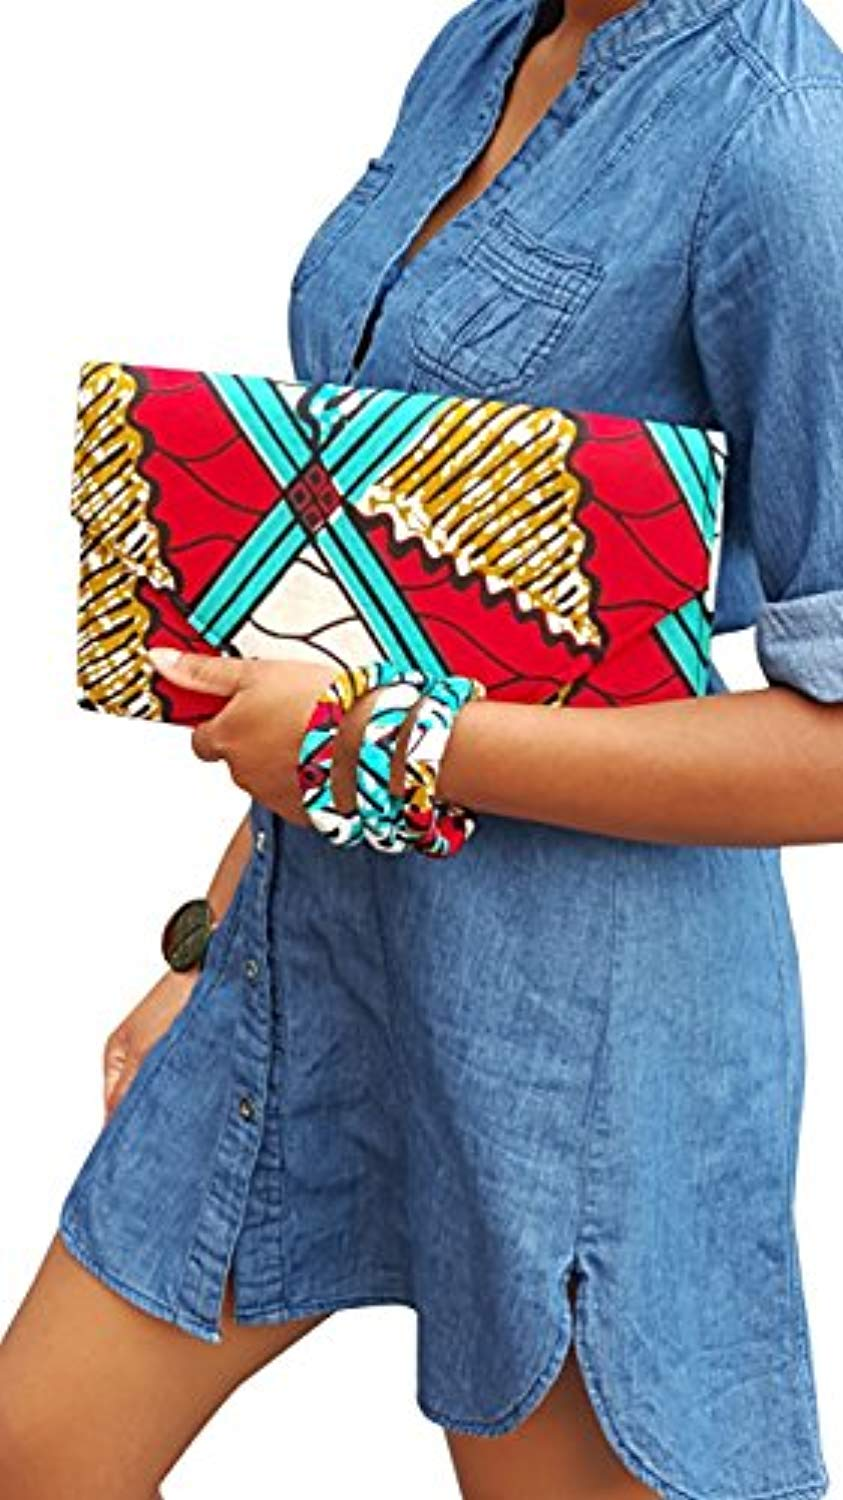 Red, Turquoise, white African Print Clutch Purse - Ufumbuzi - Home